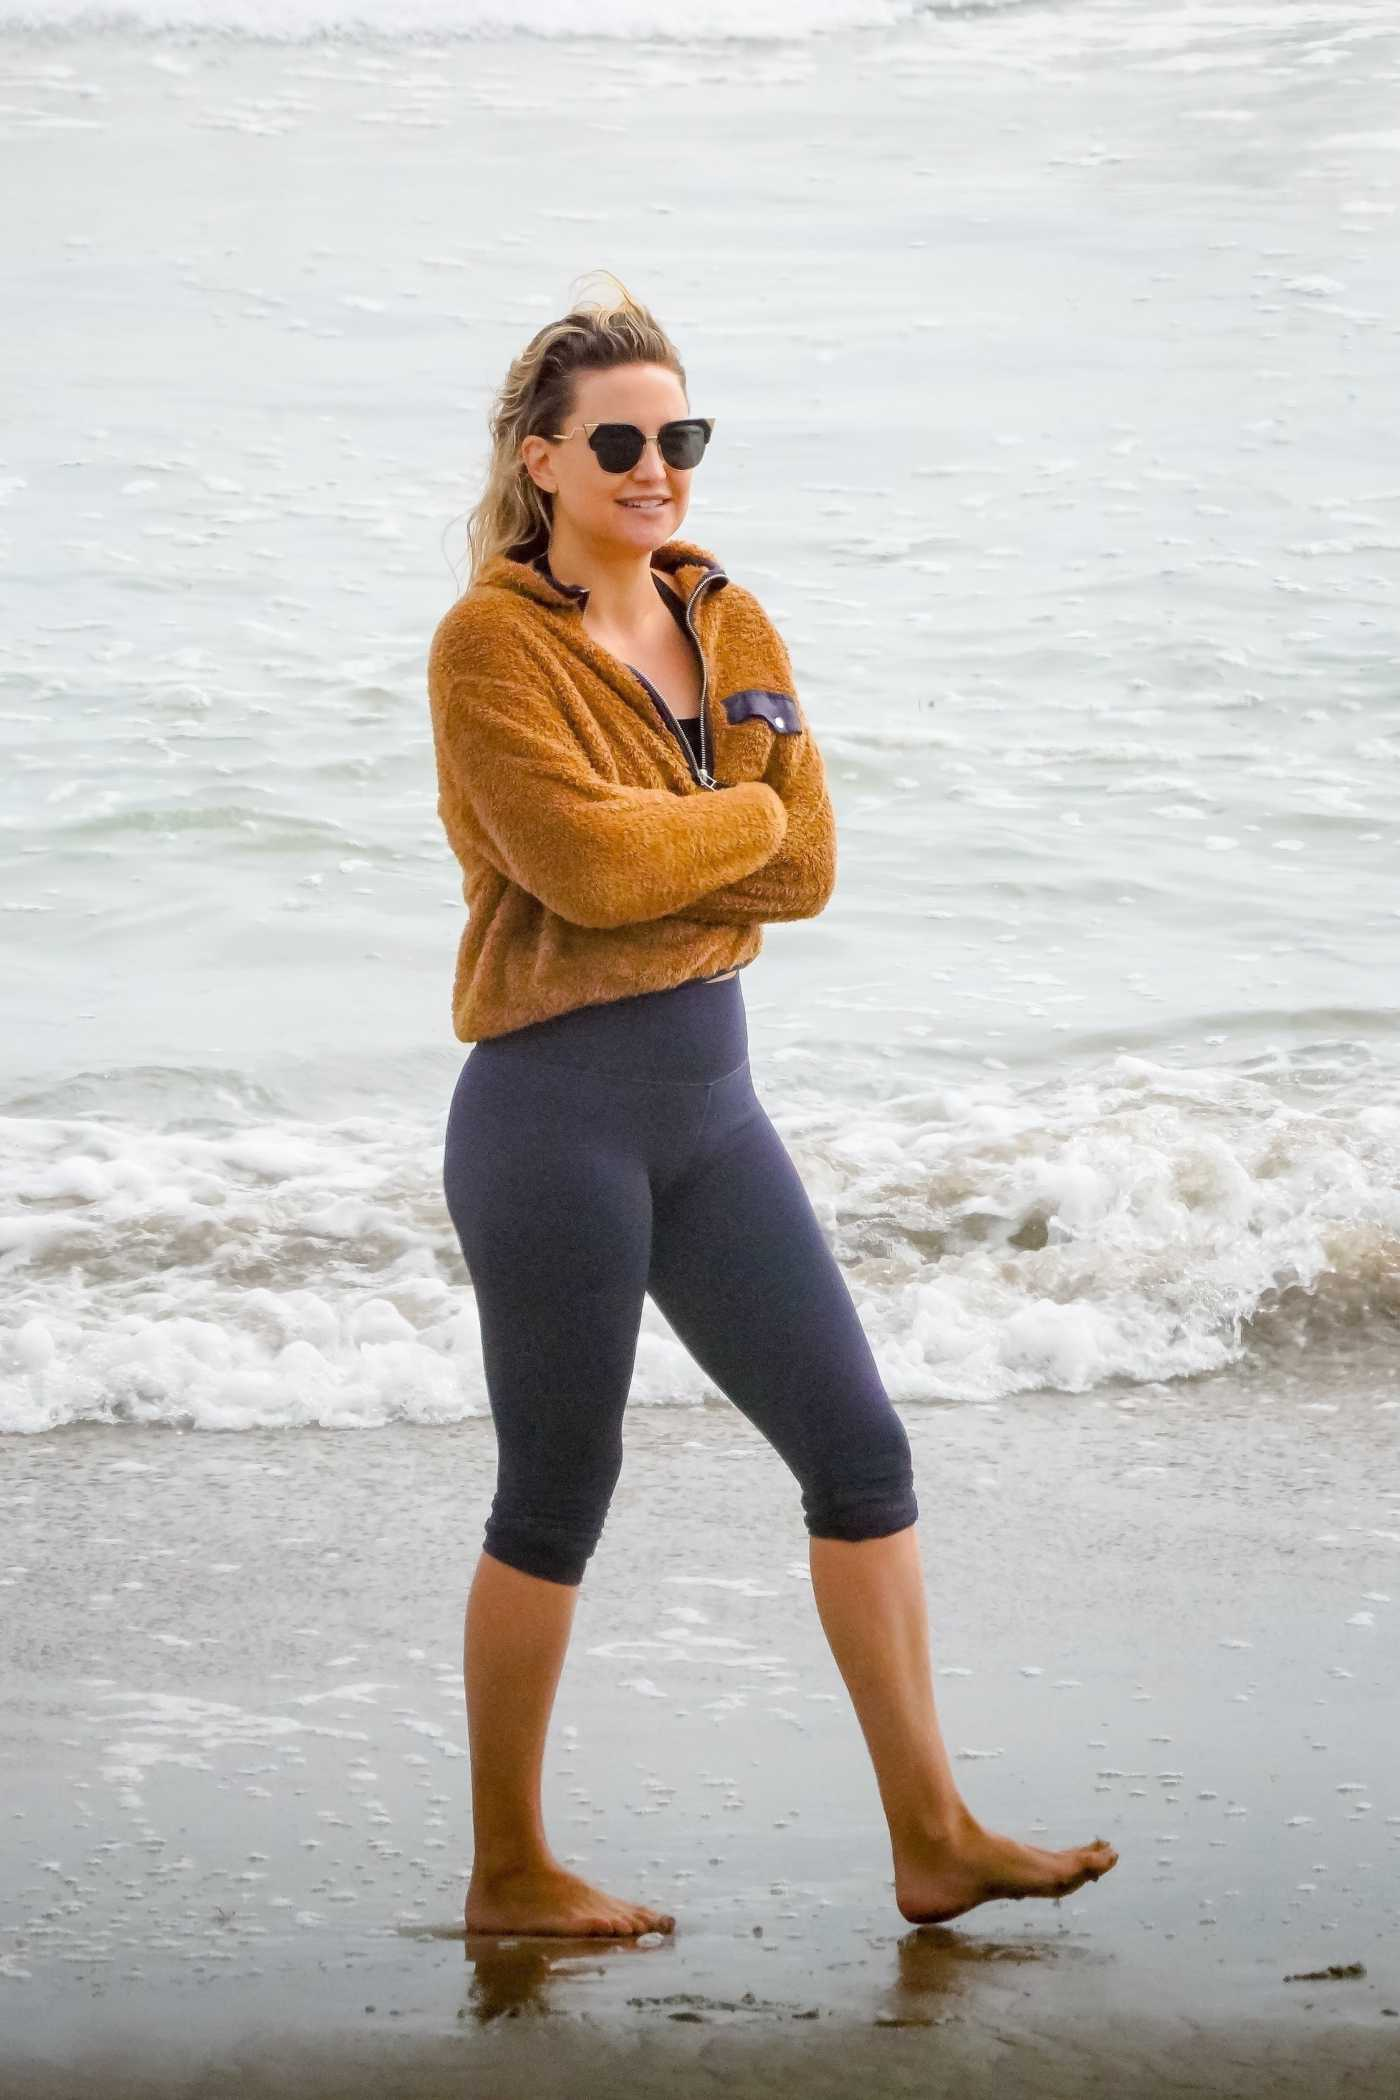 Kate Hudson in a Black Leggings Was Seen on the Beach in Malibu 07/02/2020